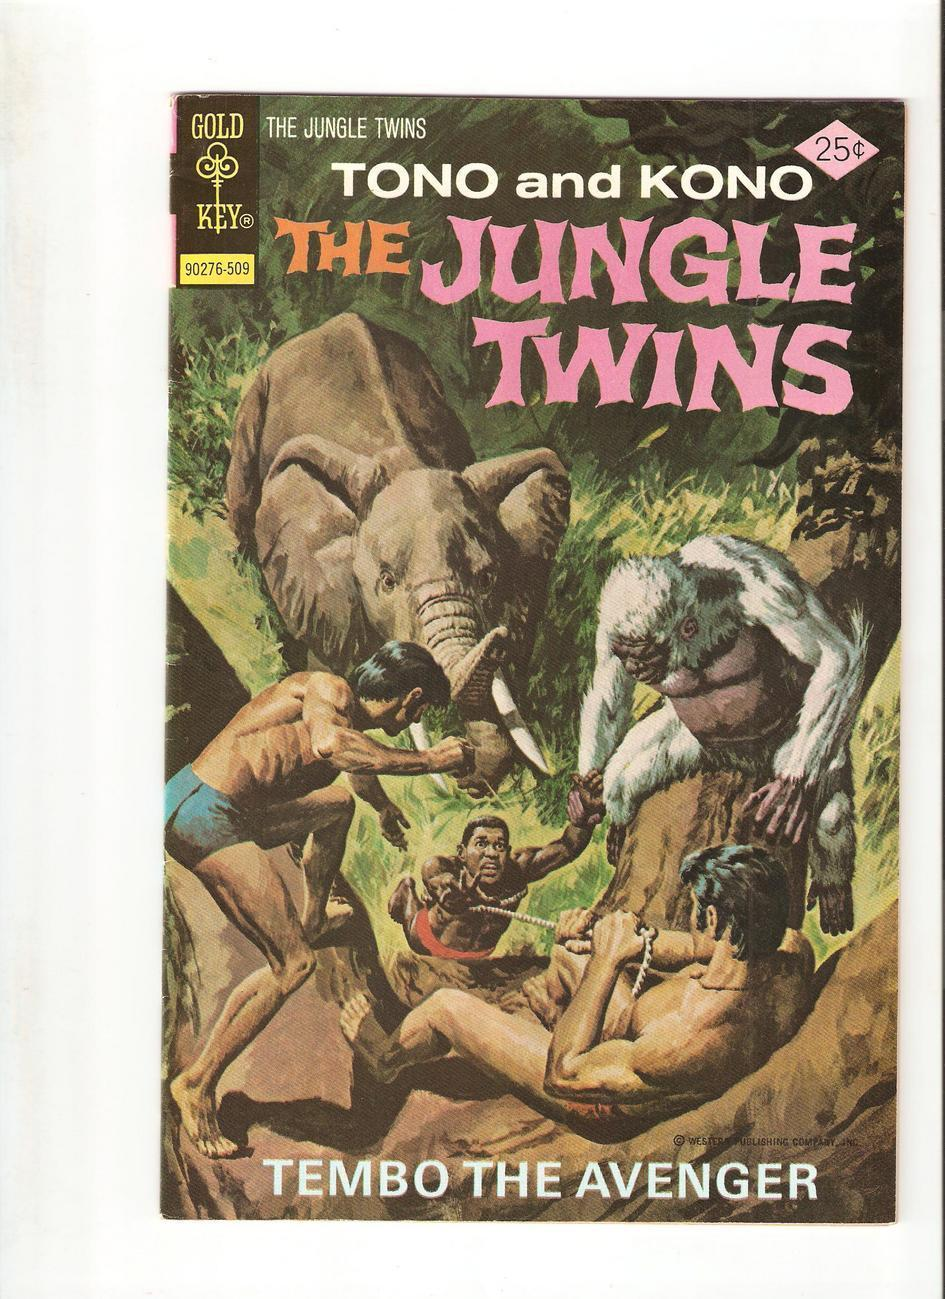 The Jungle Twins # 16 (Sept.1975)